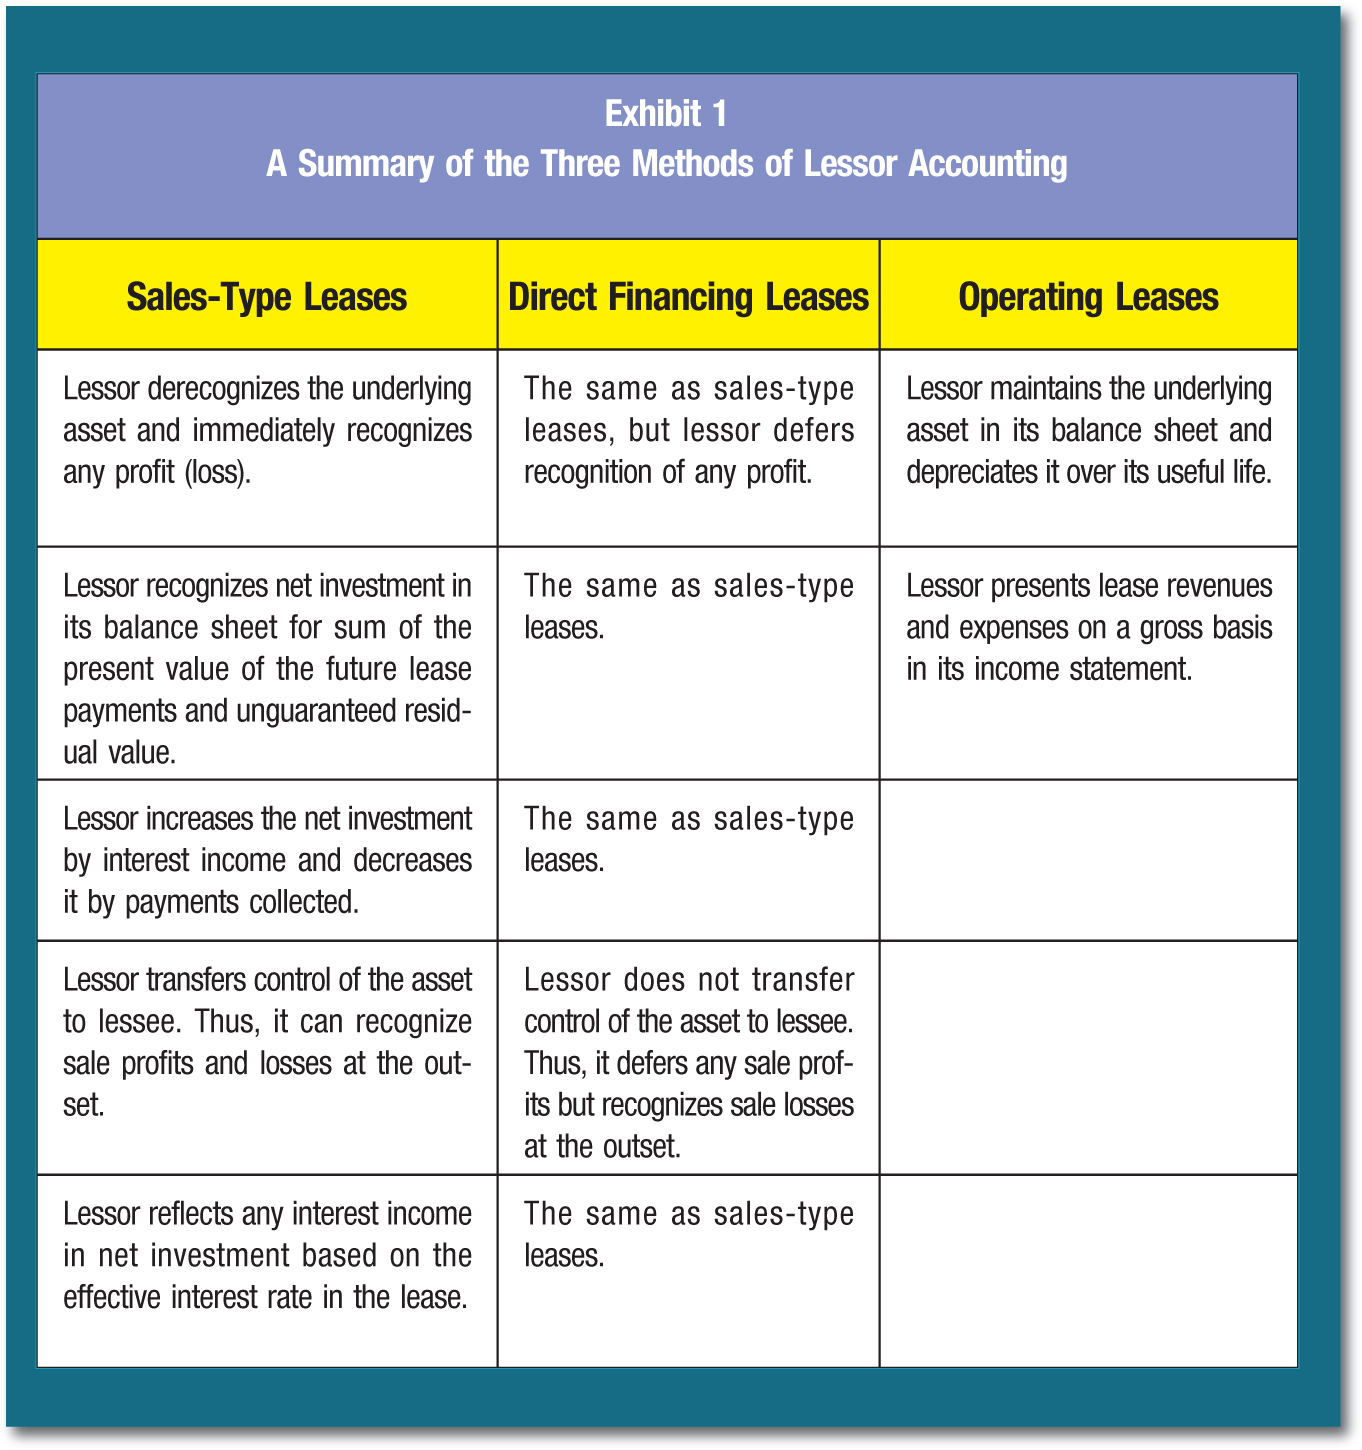 Sales-Type Leases; Direct Financing Leases; Operating Leases Lessorderecognizes the underlying asset and immediately recognizes any profit (loss).; The same as sales-type leases, but lessor defers recognition of any profit.; Lessor maintains the underlying asset in its balance sheet and depreciates it over its useful life. Lessorrecognizes net investment in its balance sheet for sum of the present value of the future lease payments and unguaranteed residual value.; The same as sales-type leases.; Lessor presents lease revenues and expenses on a gross basis in its income statement. Lessorincreases the net investment by interest income and decreases it by payments collected.; The same as sales-type leases. Lessortransfers control of the asset to lessee. Thus, it can recognize sale profits and losses at the outset.; Lessor does not transfer control of the asset to lessee. Thus, it defers any sale profits but recognizes sale losses at the outset. Lessorreflects any interest income in net investment based on the effective interest rate in the lease.; The same as sales-type leases.